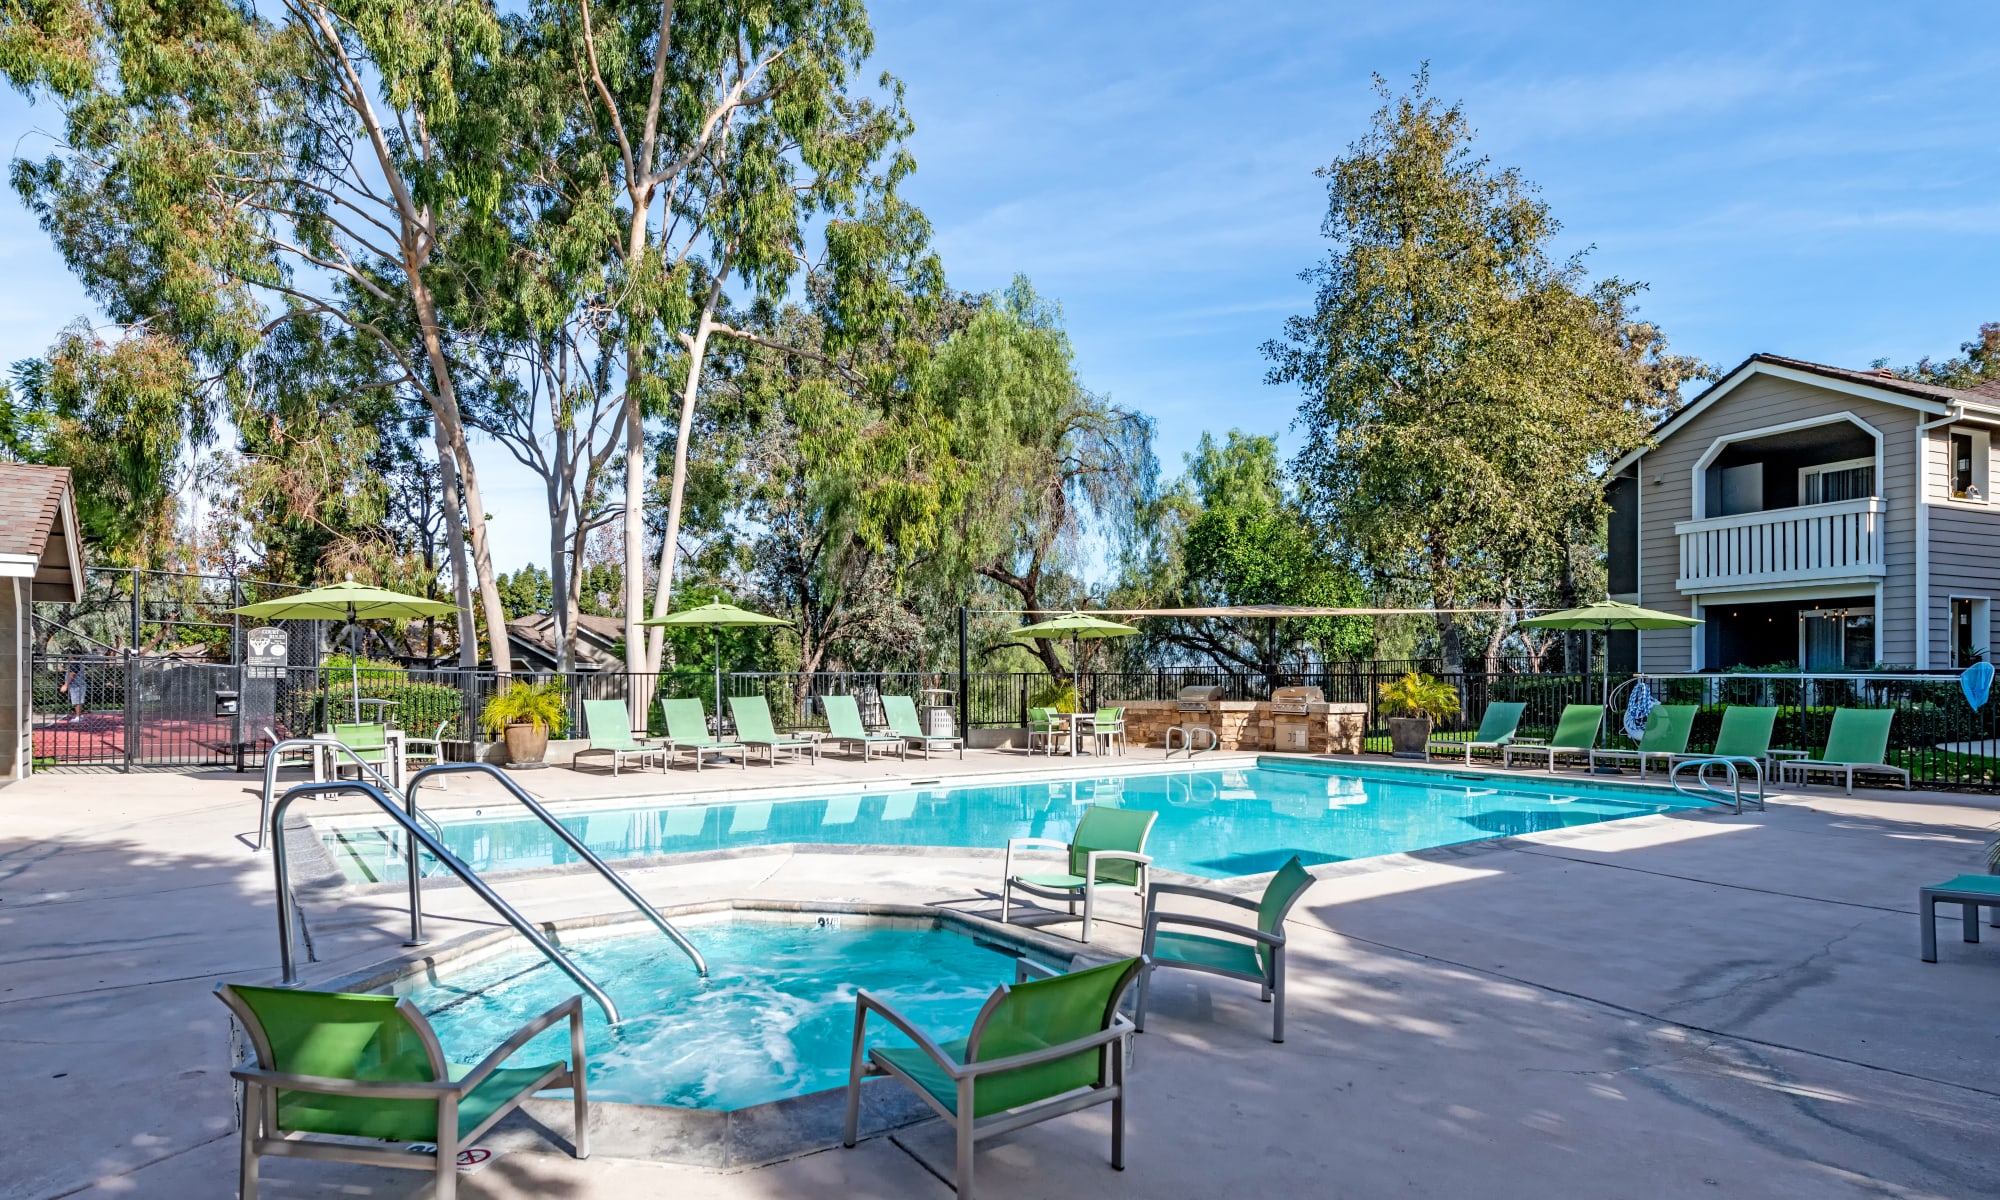 Beautiful pool/spa area with lounge chairs at sunset at Village Oaks in Chino Hills, CA